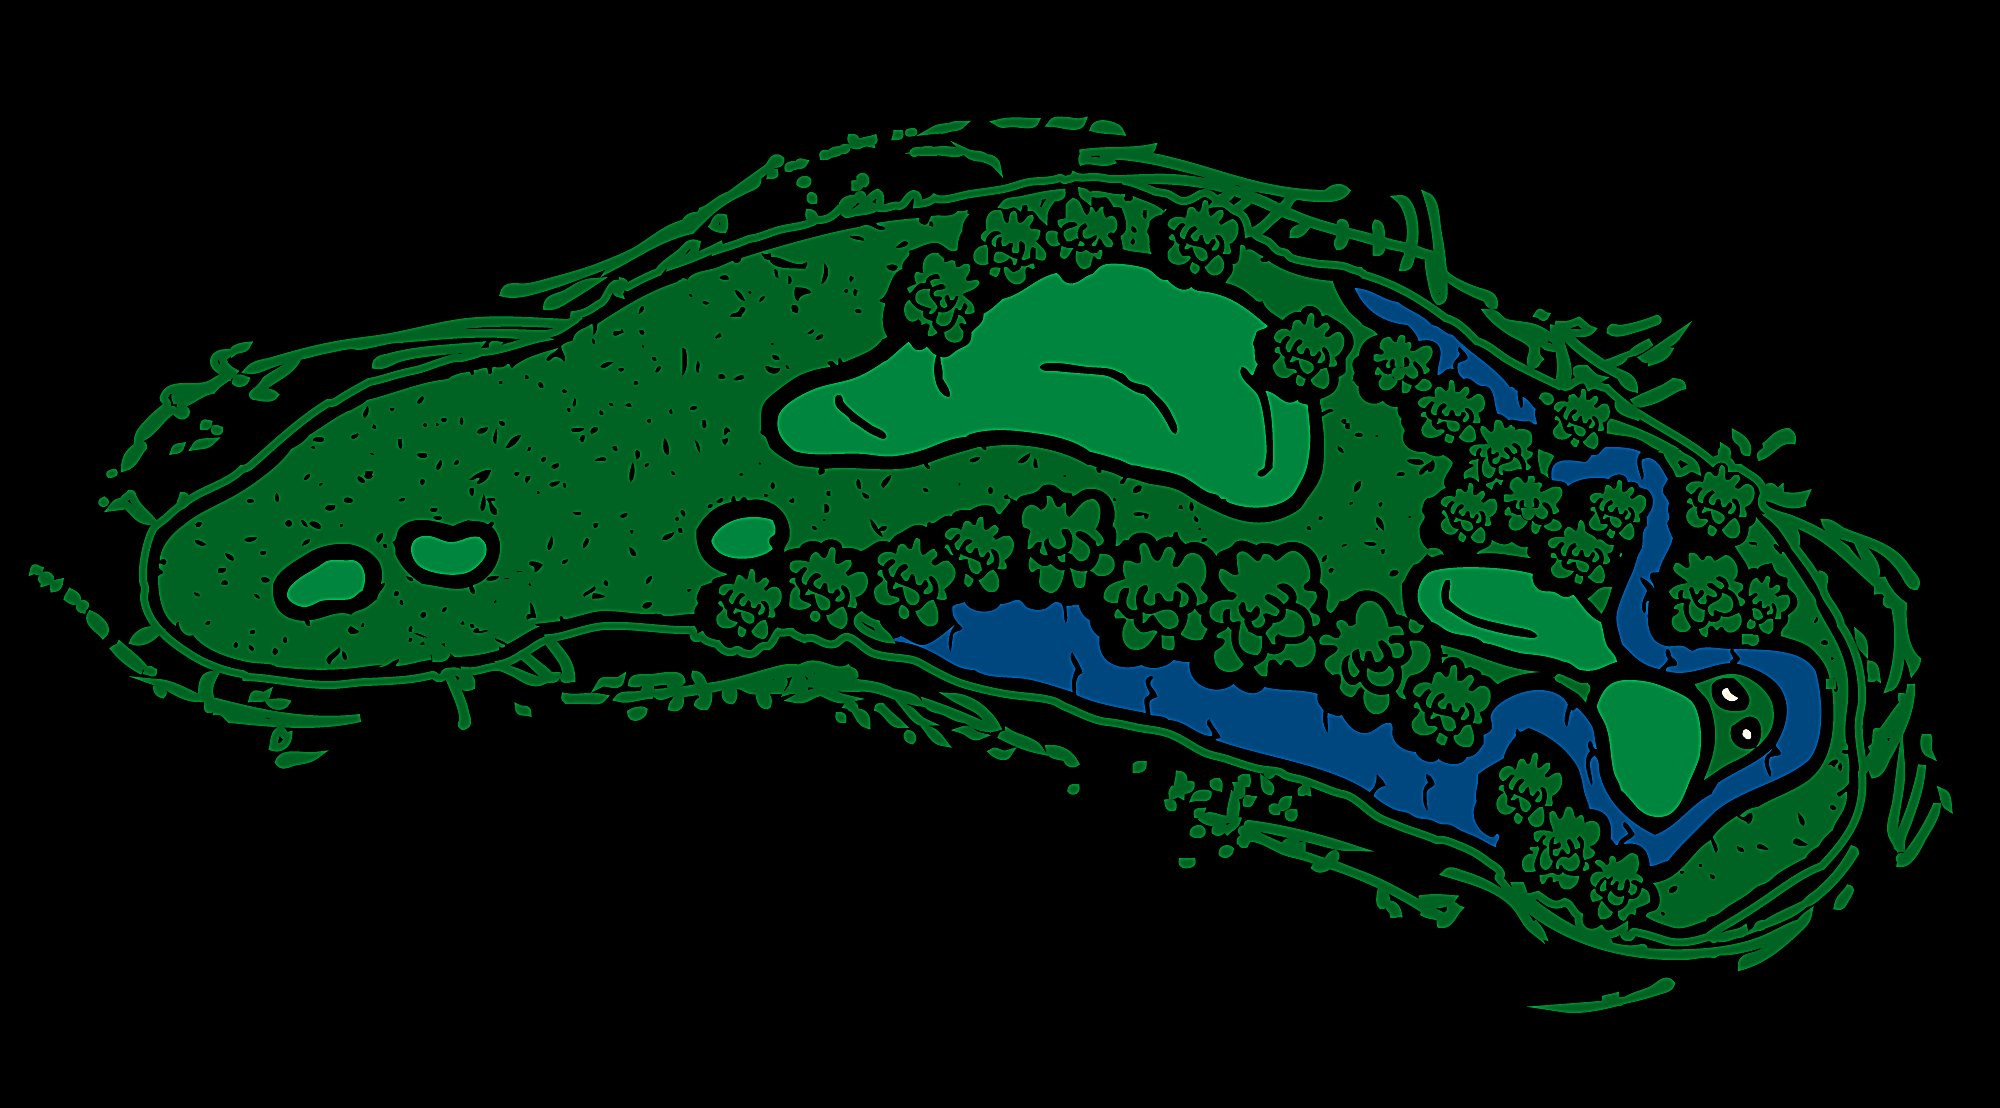 Meadow Valleys Hole 14 Nature's Course Layout